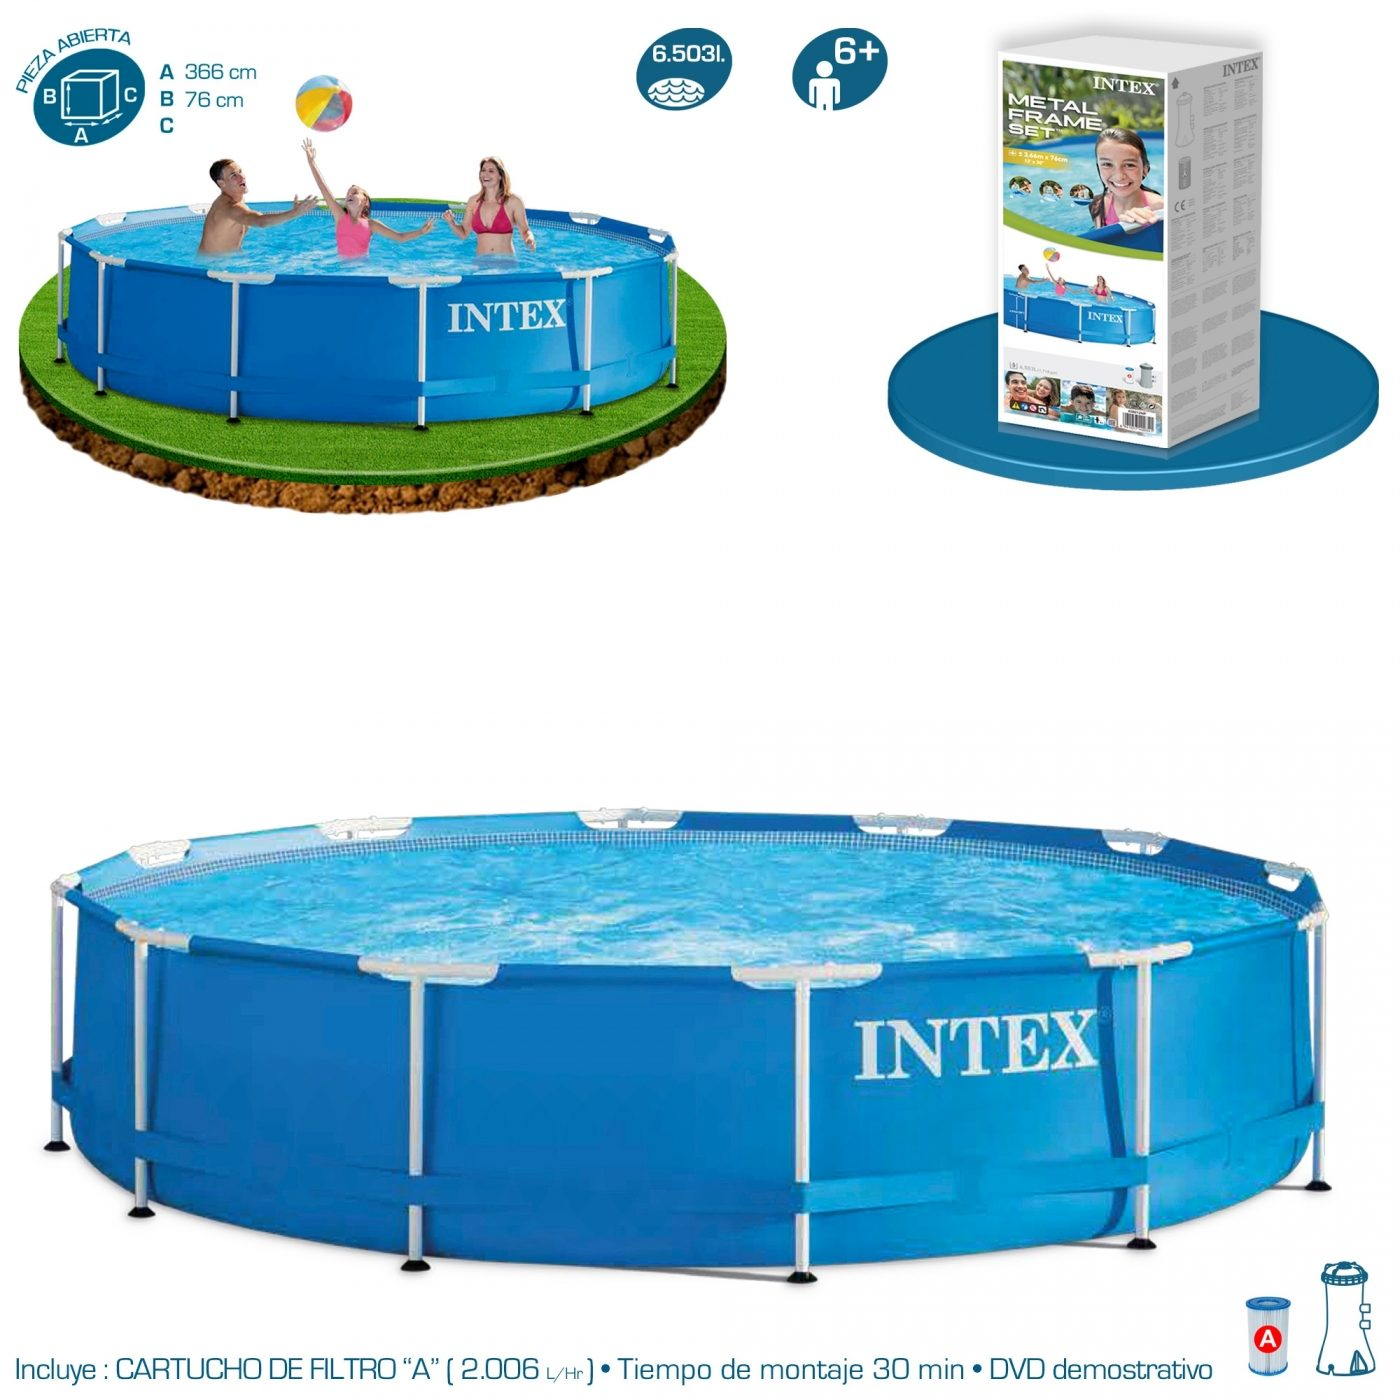 Intex Piscinas Acessorios Piscina Desmontable Intex And Depuradora 366x76 Cm 6 503 L